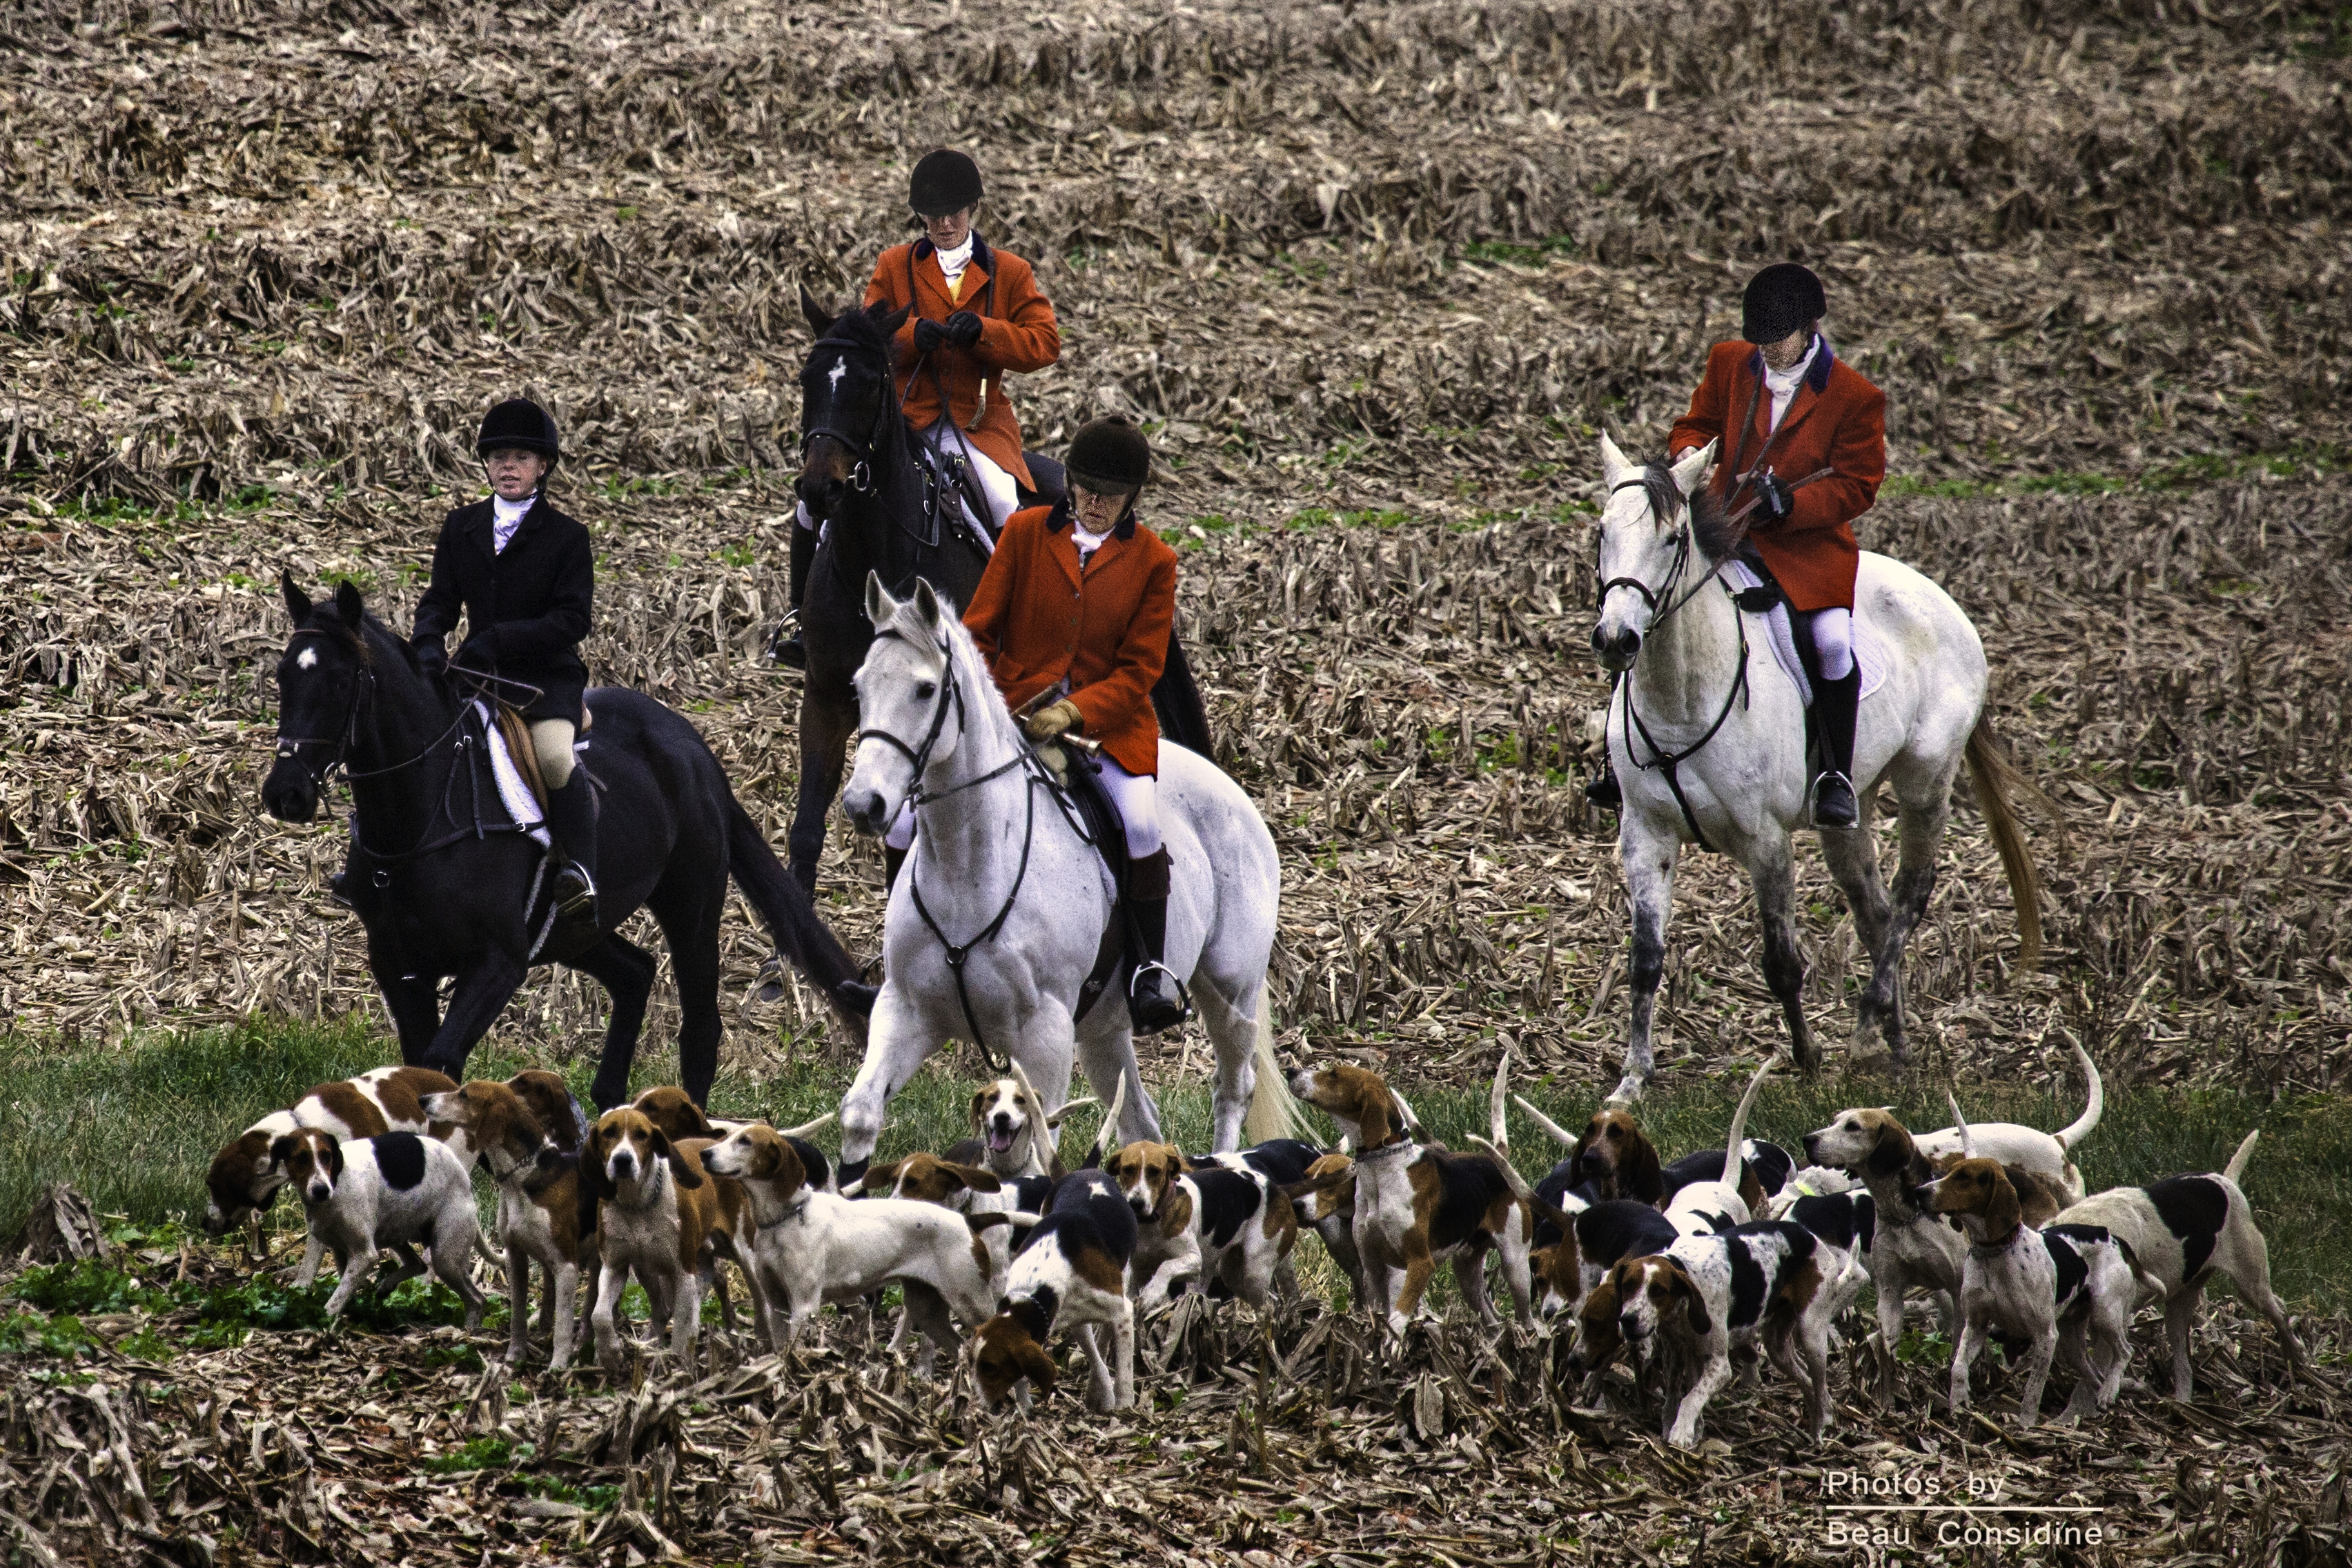 Hunting: cruelty fuelled by human arrogance and elitism